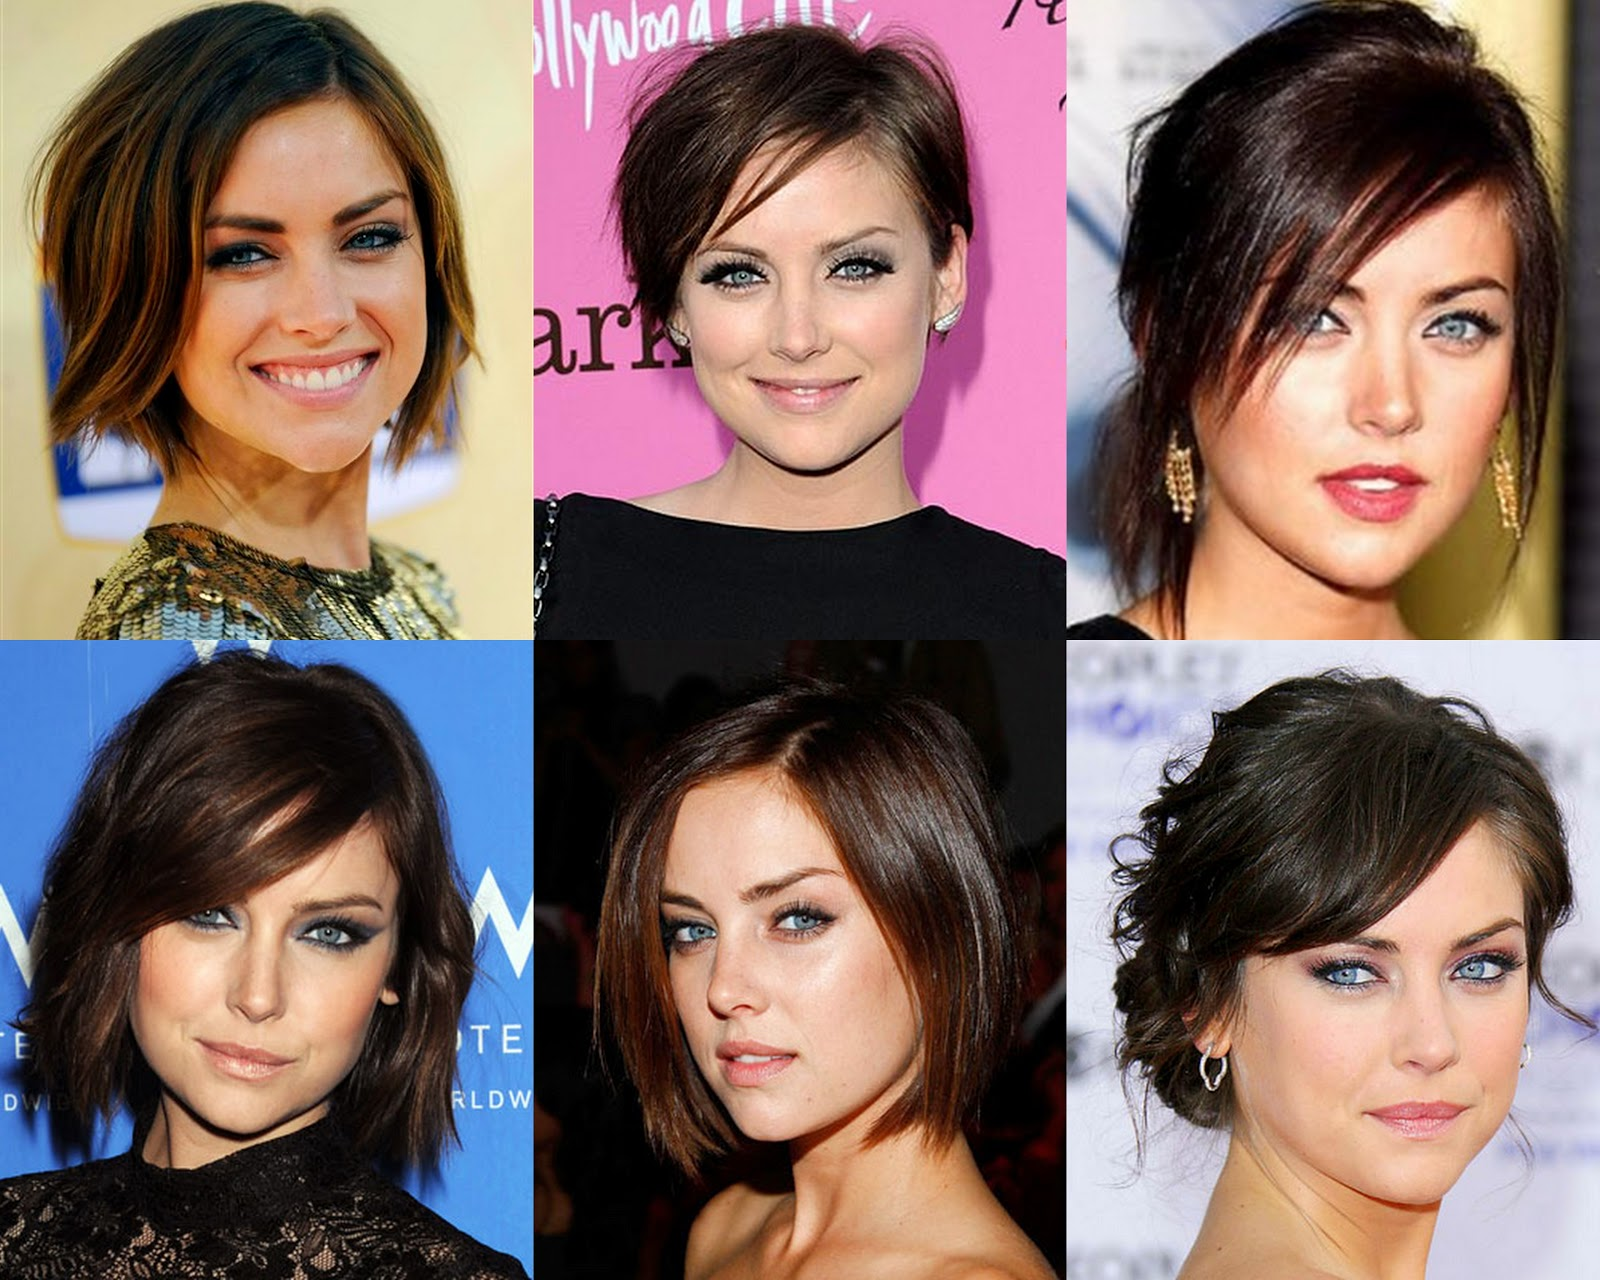 Short And Sy Jessica Stroup Stands Out As The Erratic Individualistic Erin Silver In Series With Her Savvy Do